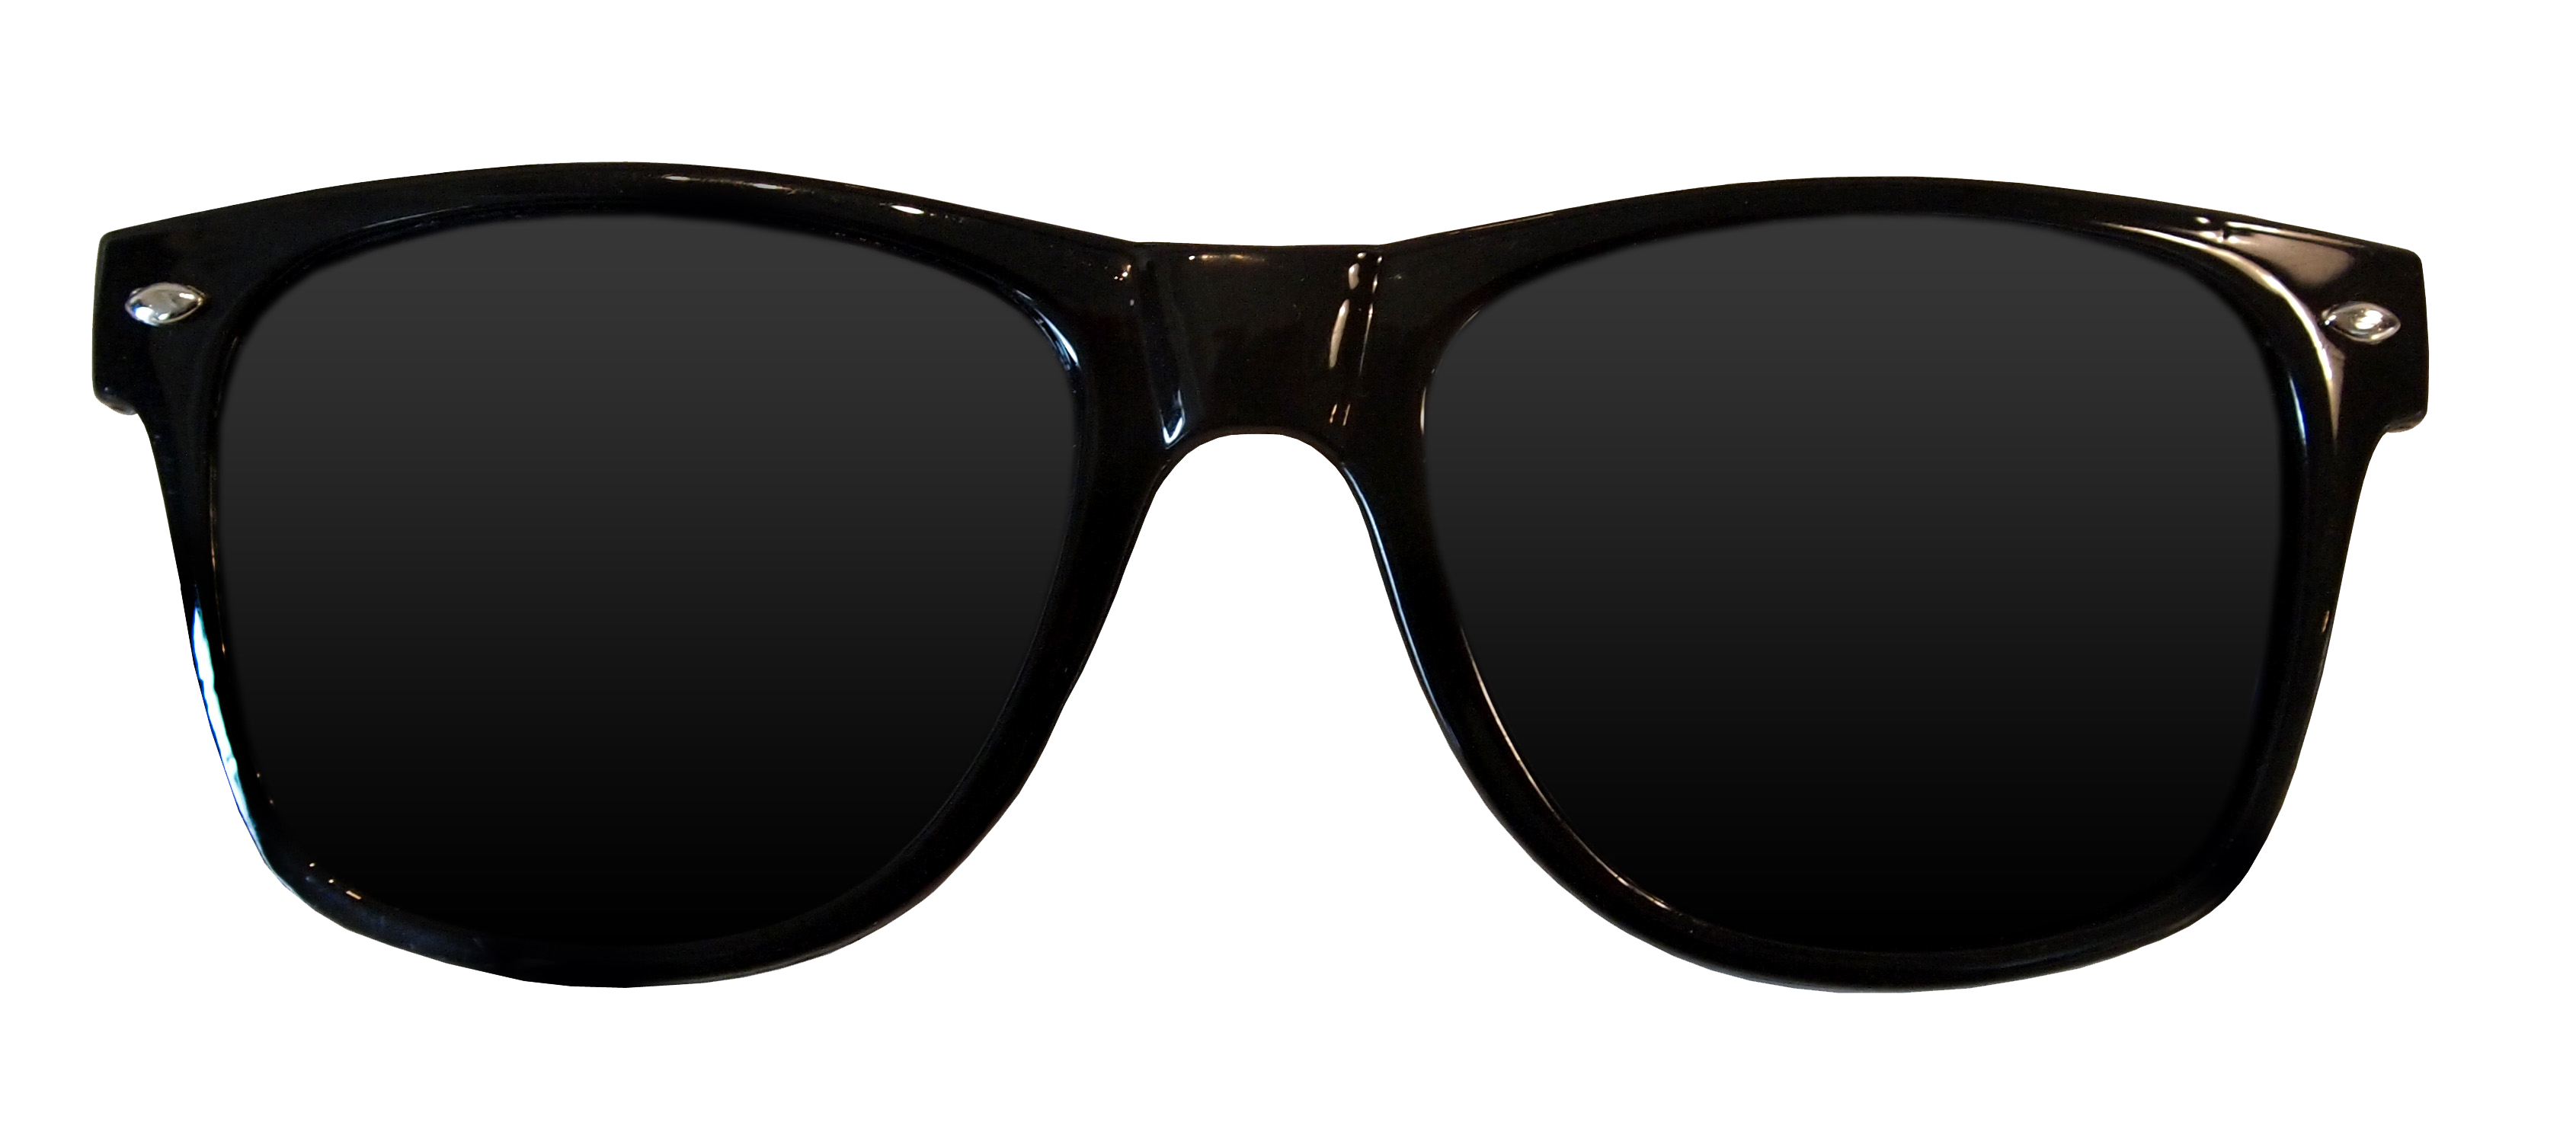 Sunglasses Picture PNG Image